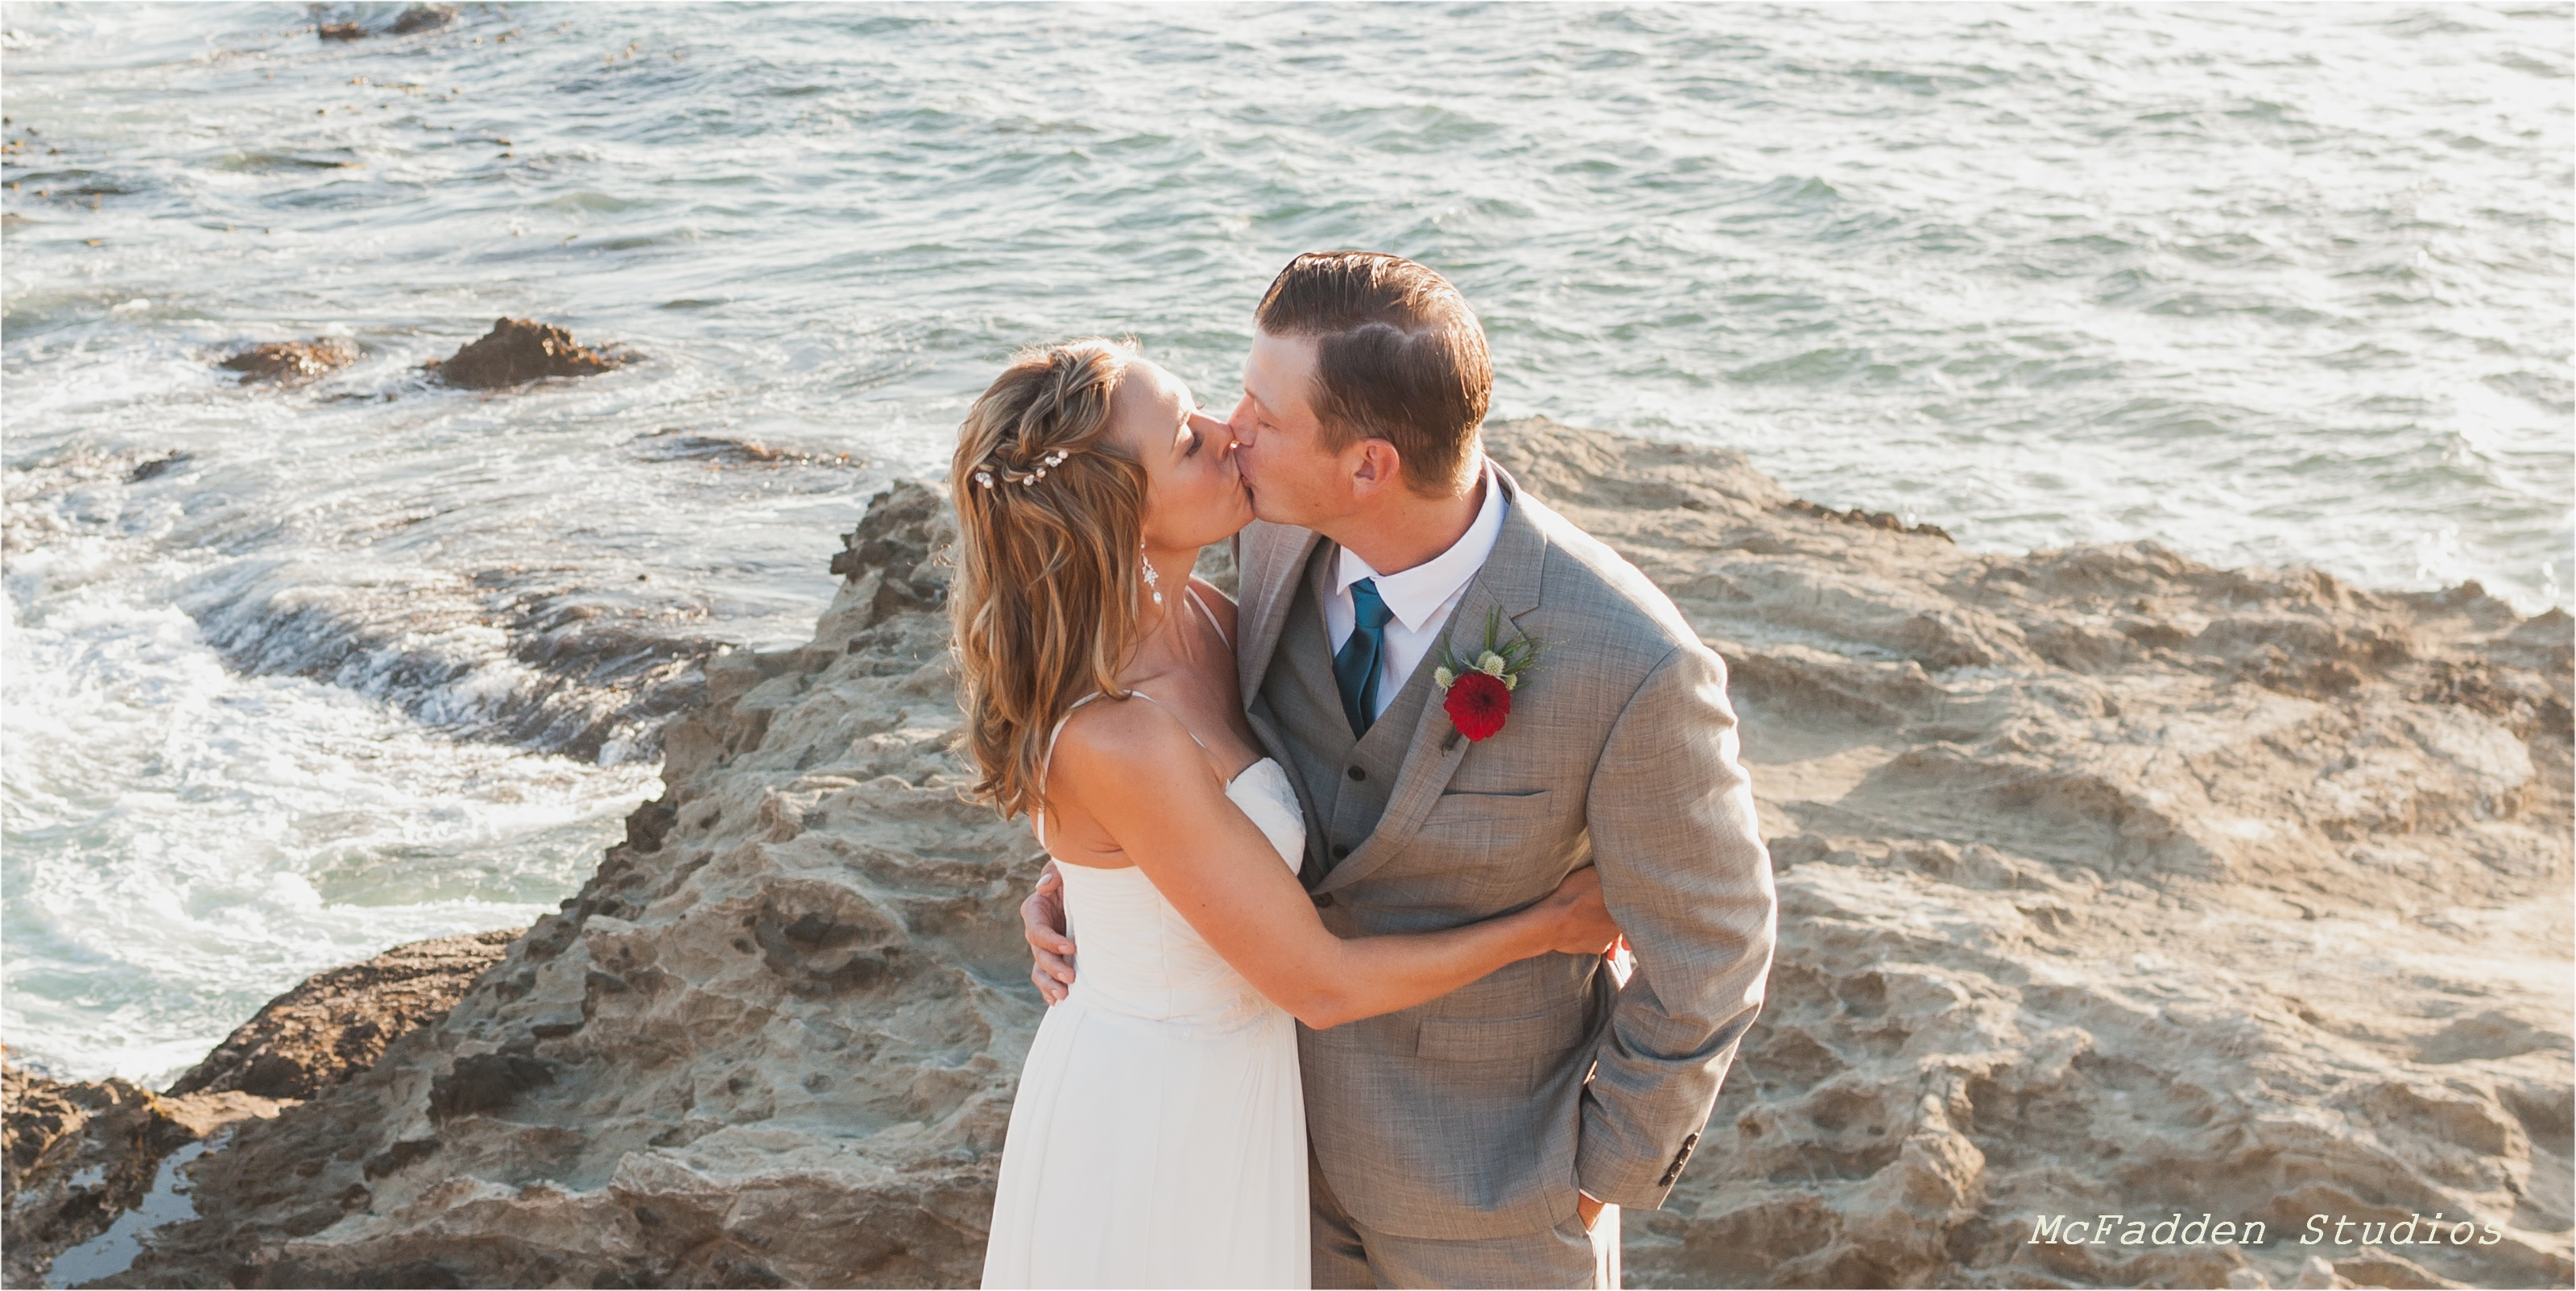 Not long after their Elope Mendocino wedding, Megan and Shane exchange a kiss as the ocean crashes on the rocks offshore.